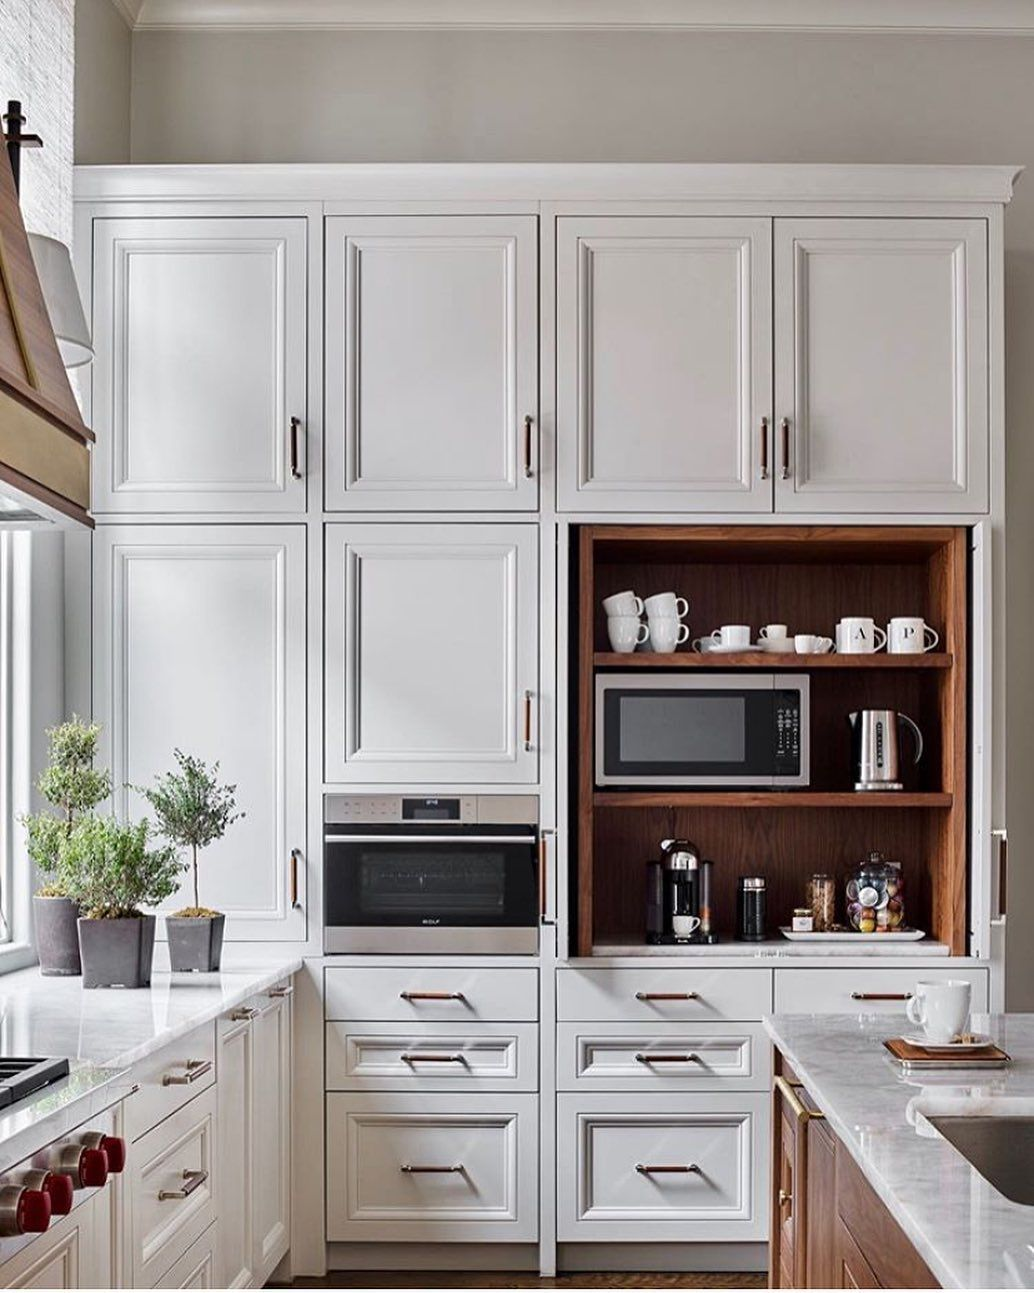 Scoutandnimble On Instagram Cappuccino Anyone We Are Loving This Hidden Coffee Station In This In 2020 Kitchen Design Trends Kitchen Inspirations Kitchen Trends